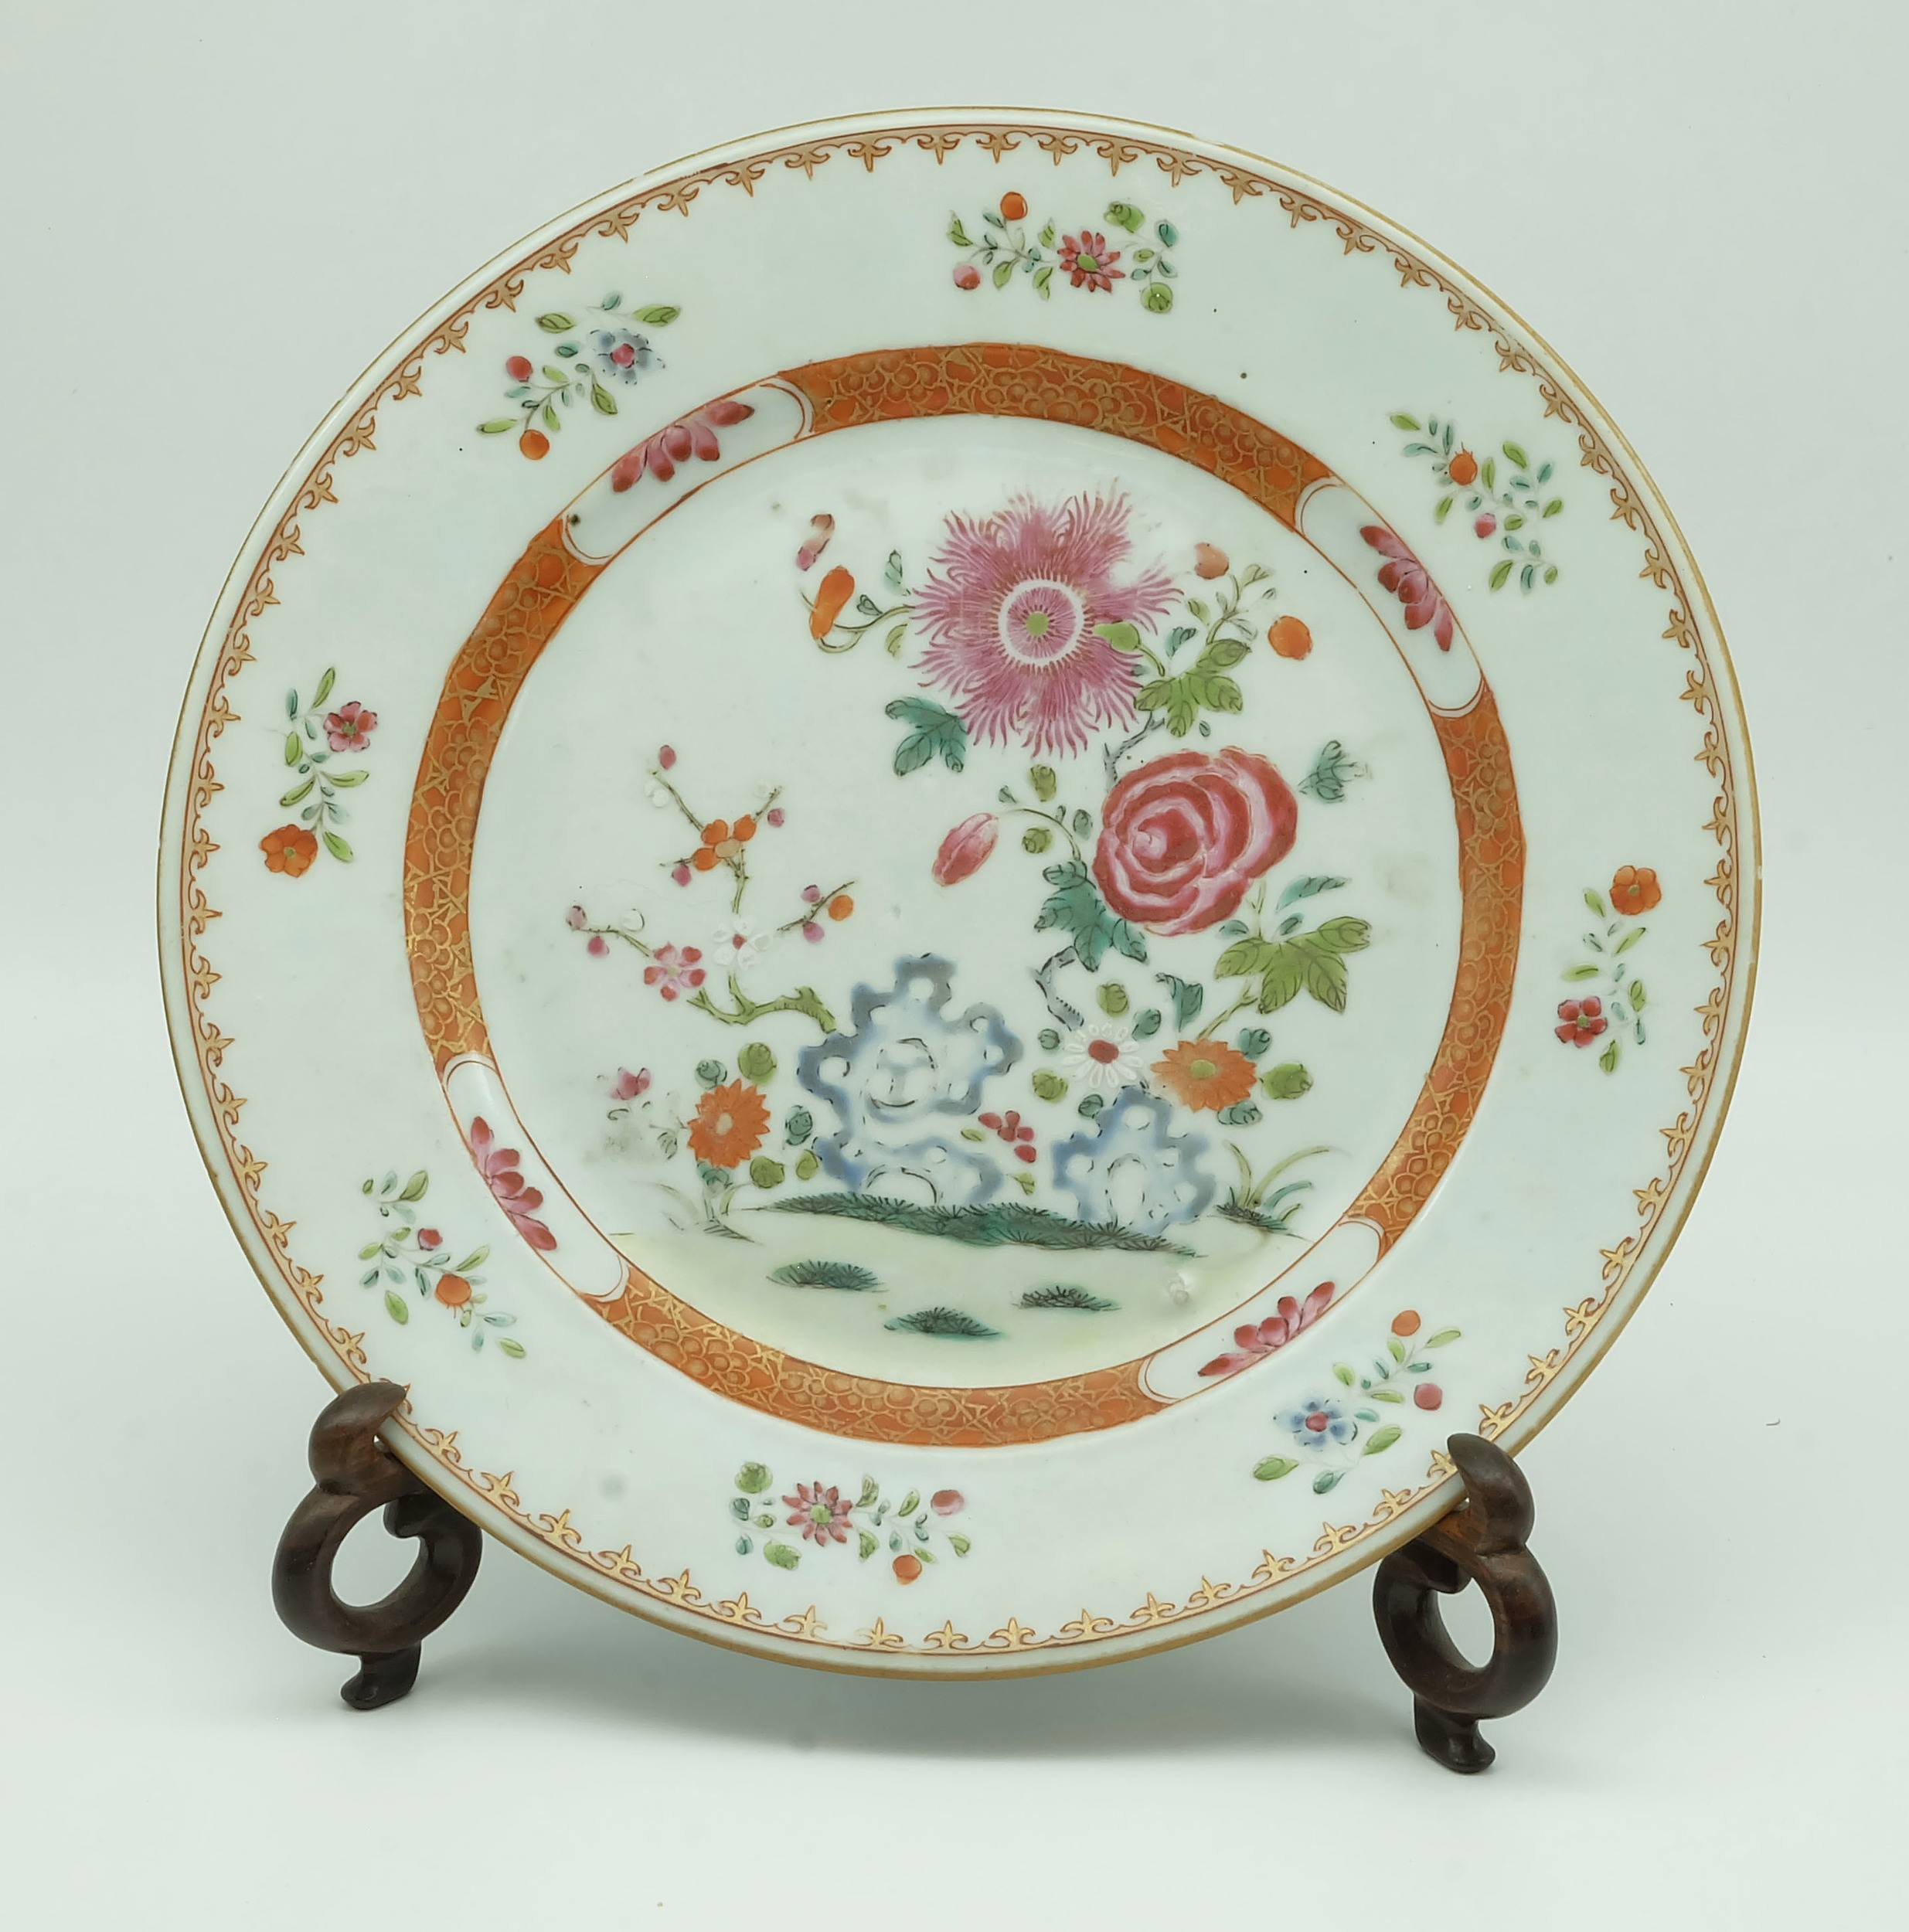 '18th Century Chinese Export Famille Rose Plate'